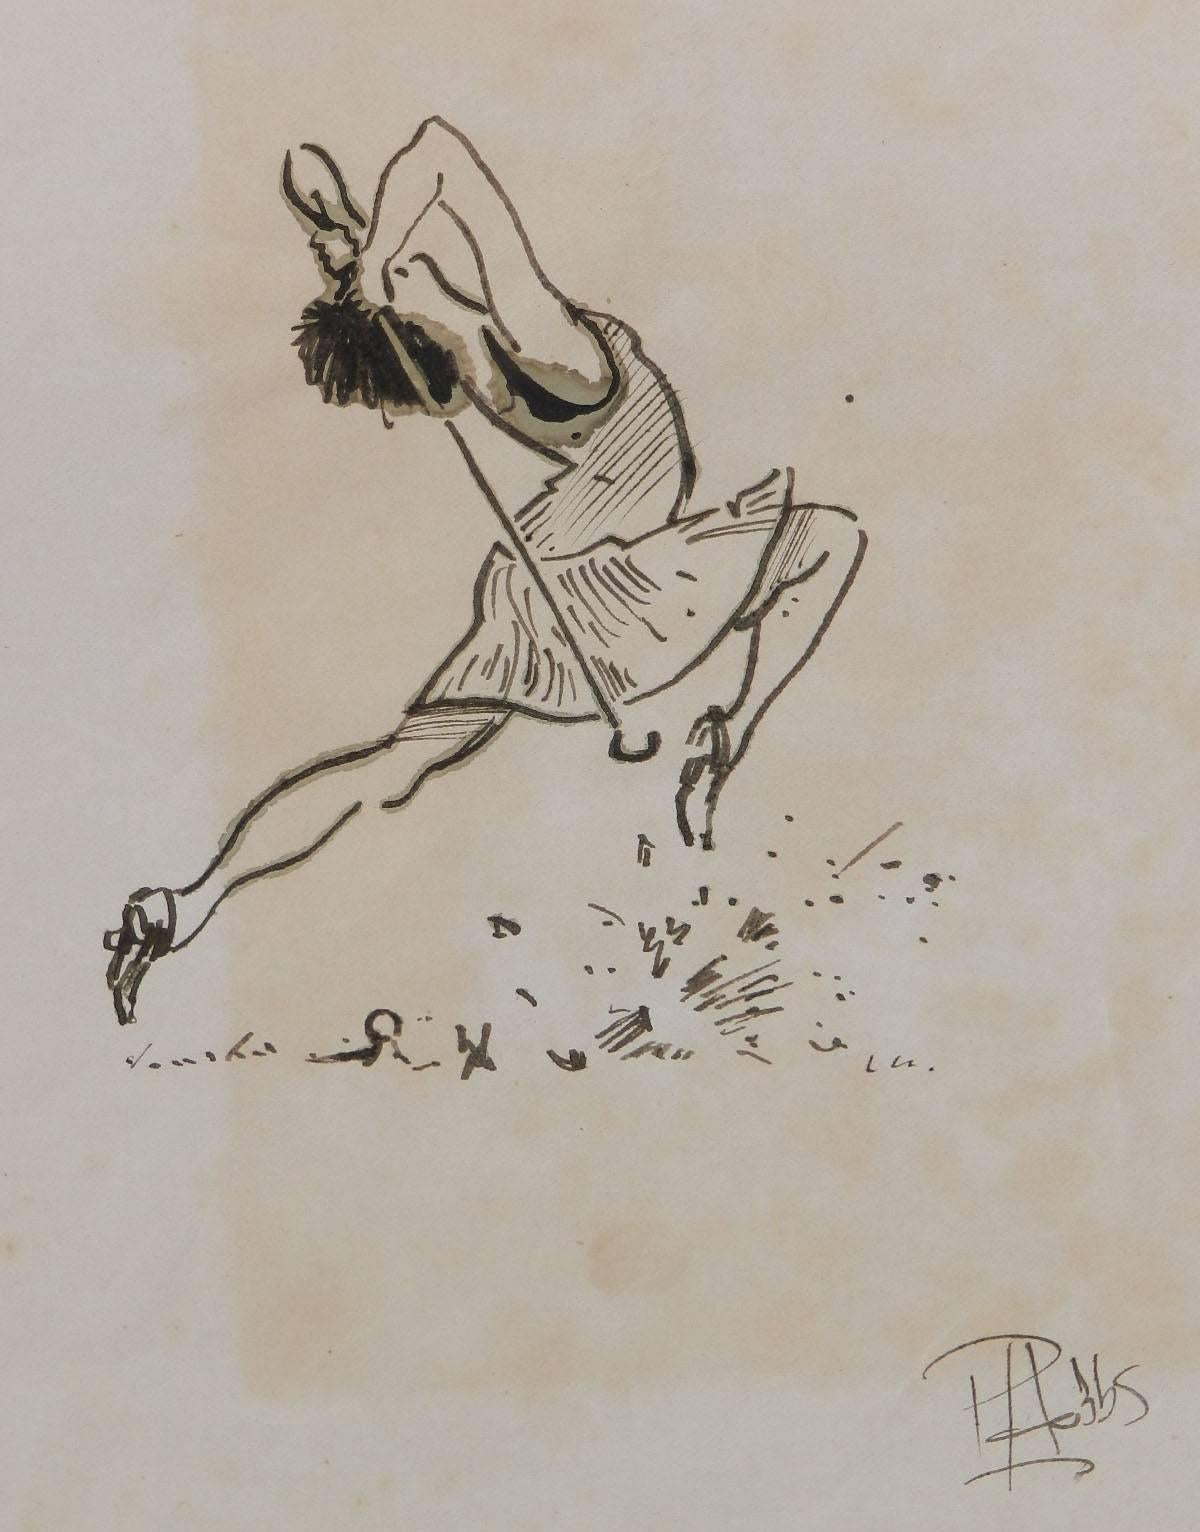 Caricature of a Lady Golfer by Peter Hobbs original watercolour sketch